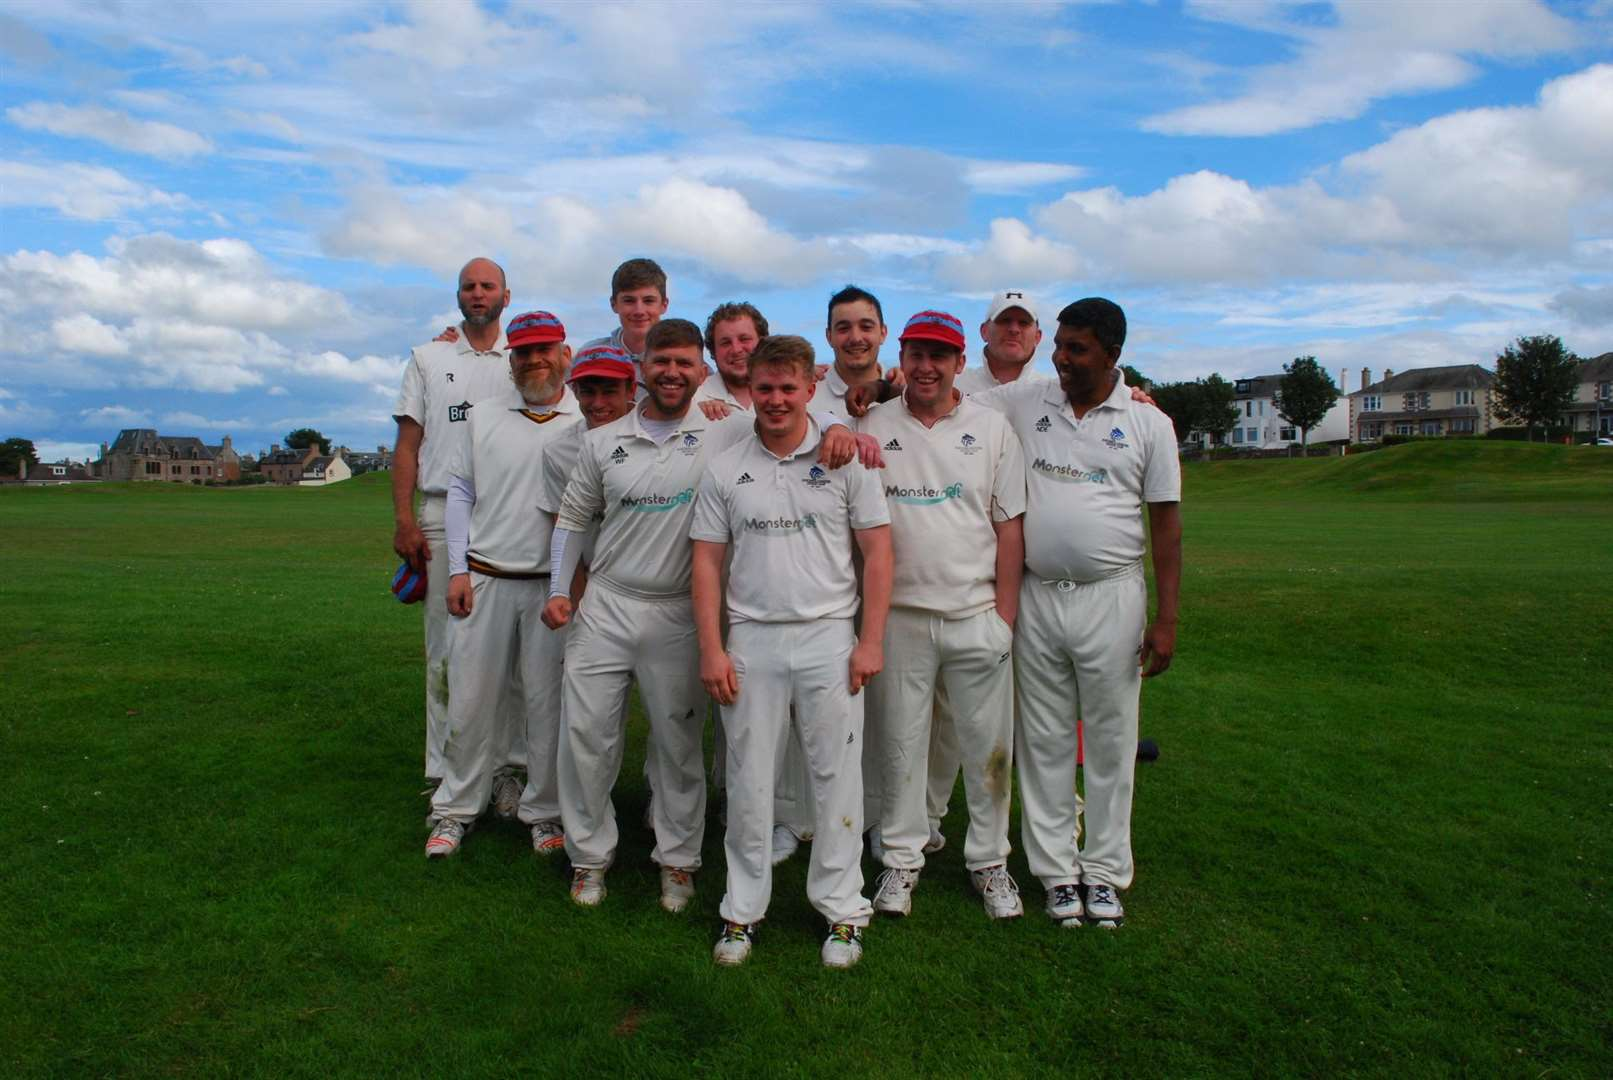 The victorious Northern Counties team who defeated Highland and Buckie in the final of the T20 Cup.